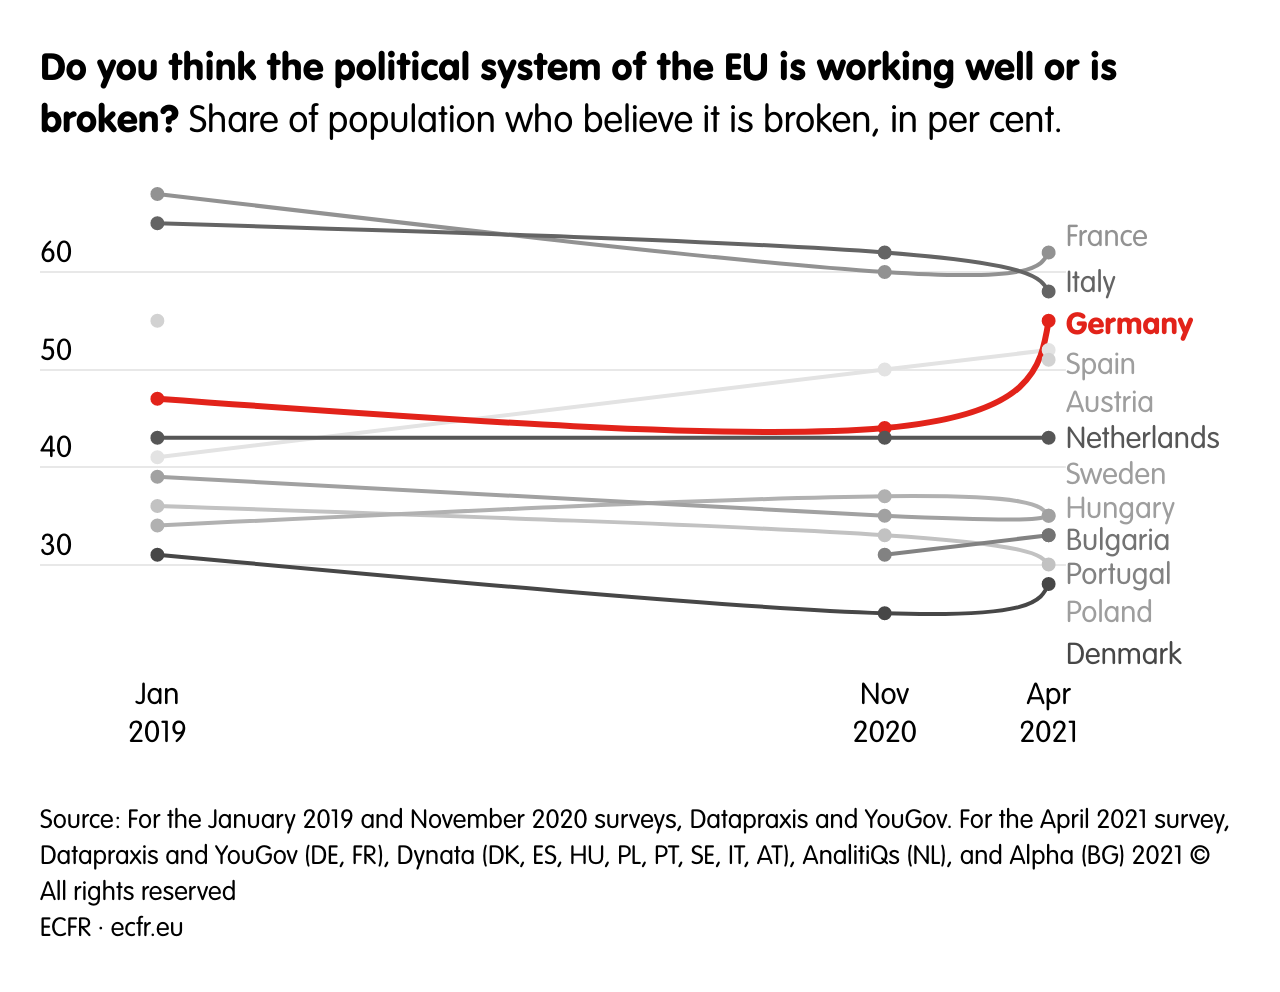 Do you think the political system of the EU is working well or is broken?